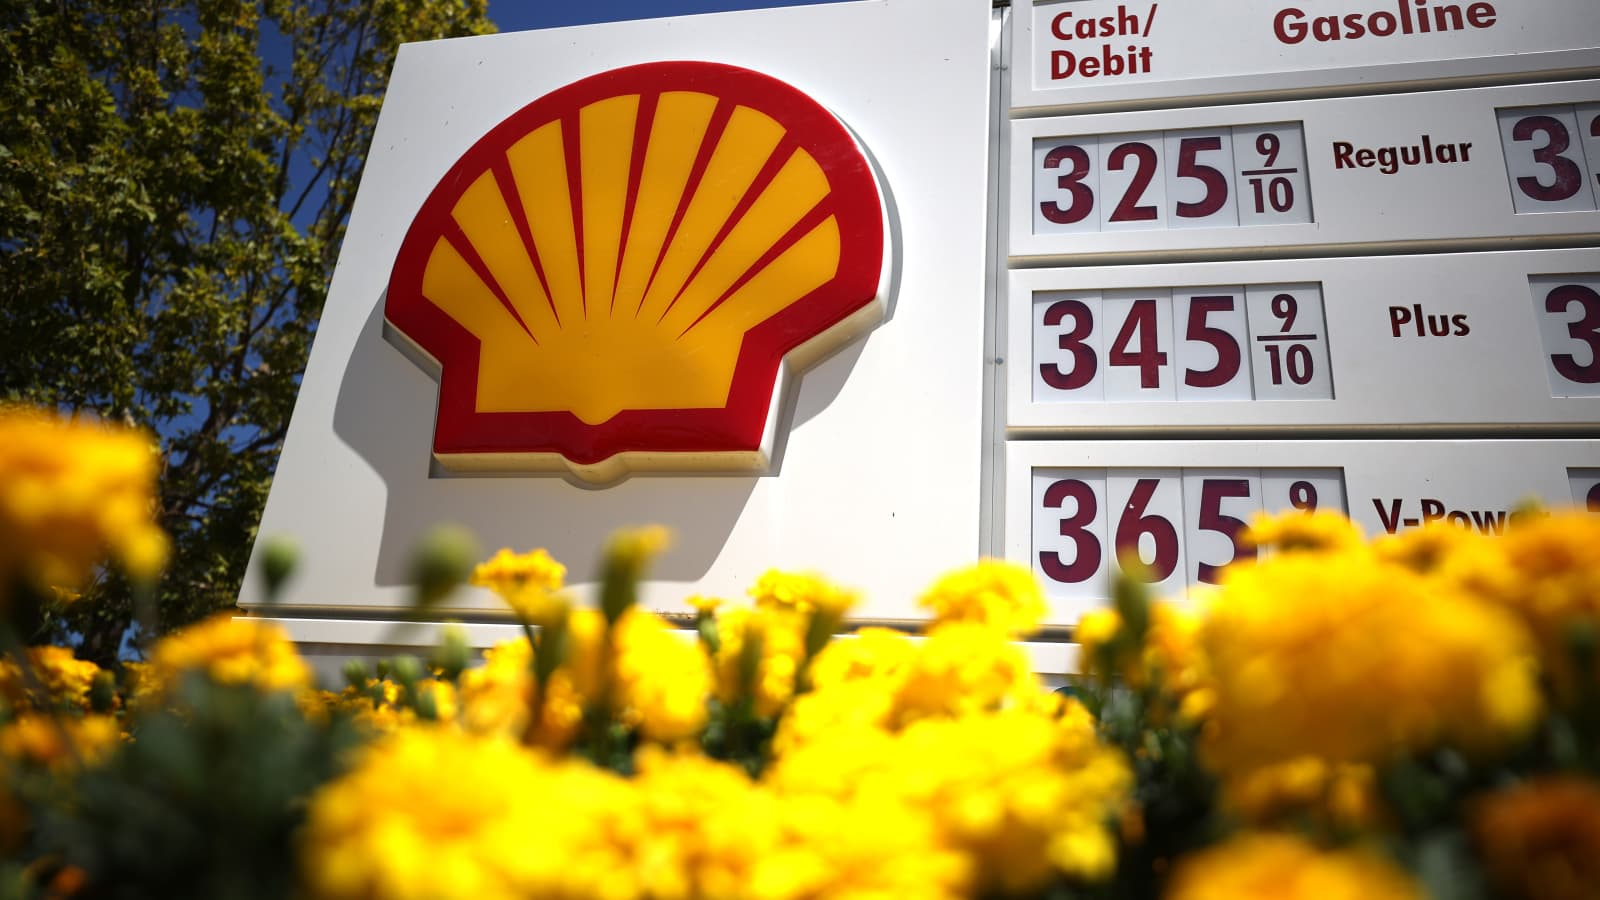 Shell earnings: Oil giant raises dividend and starts share buyback